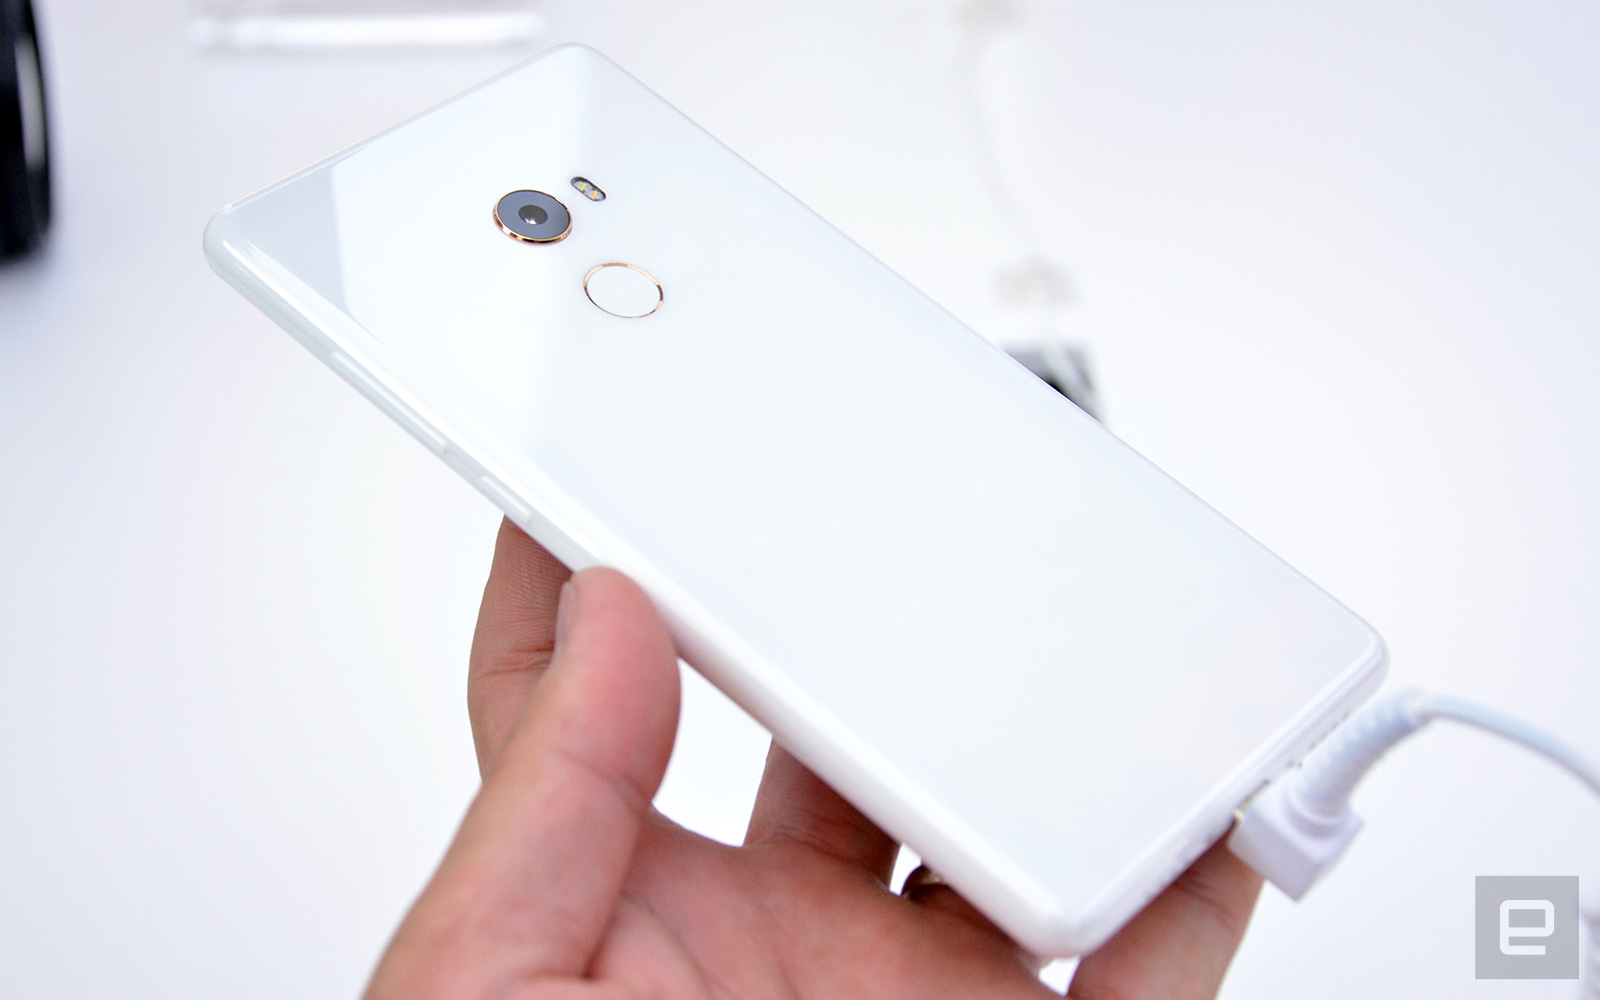 Xiaomis Mi Mix 2 Comes With A Stunning Ceramic Unibody Casing Handphone Back Tempered Glass Series For Xiaomi Redmi Note Golden Free Another Issue The Original Was That It Only Available In China Due To Limited Supply My Surprise This Time Is Making